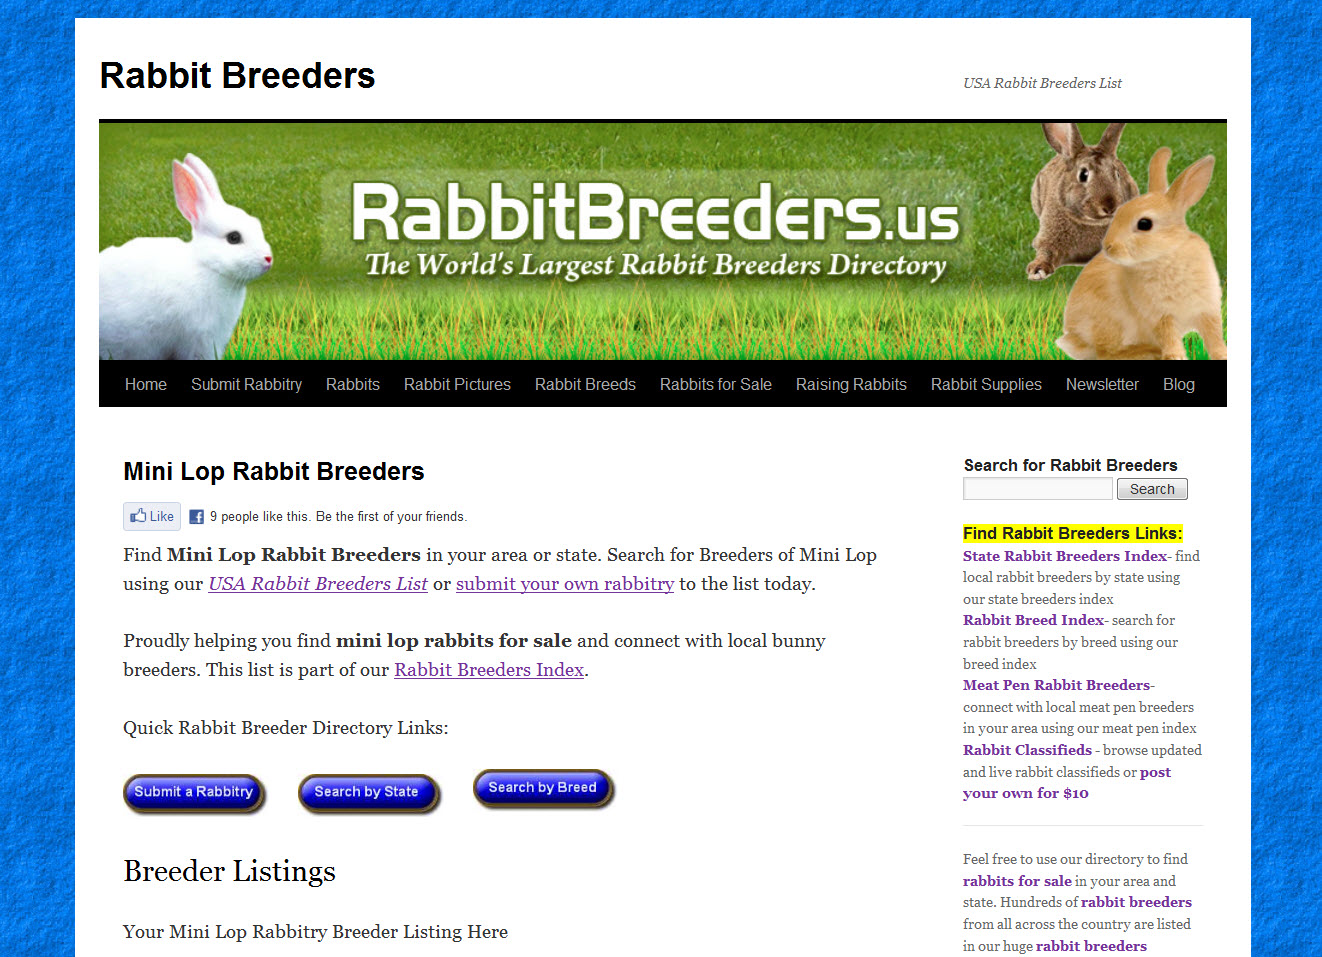 Mini Lop Rabbit Breeders